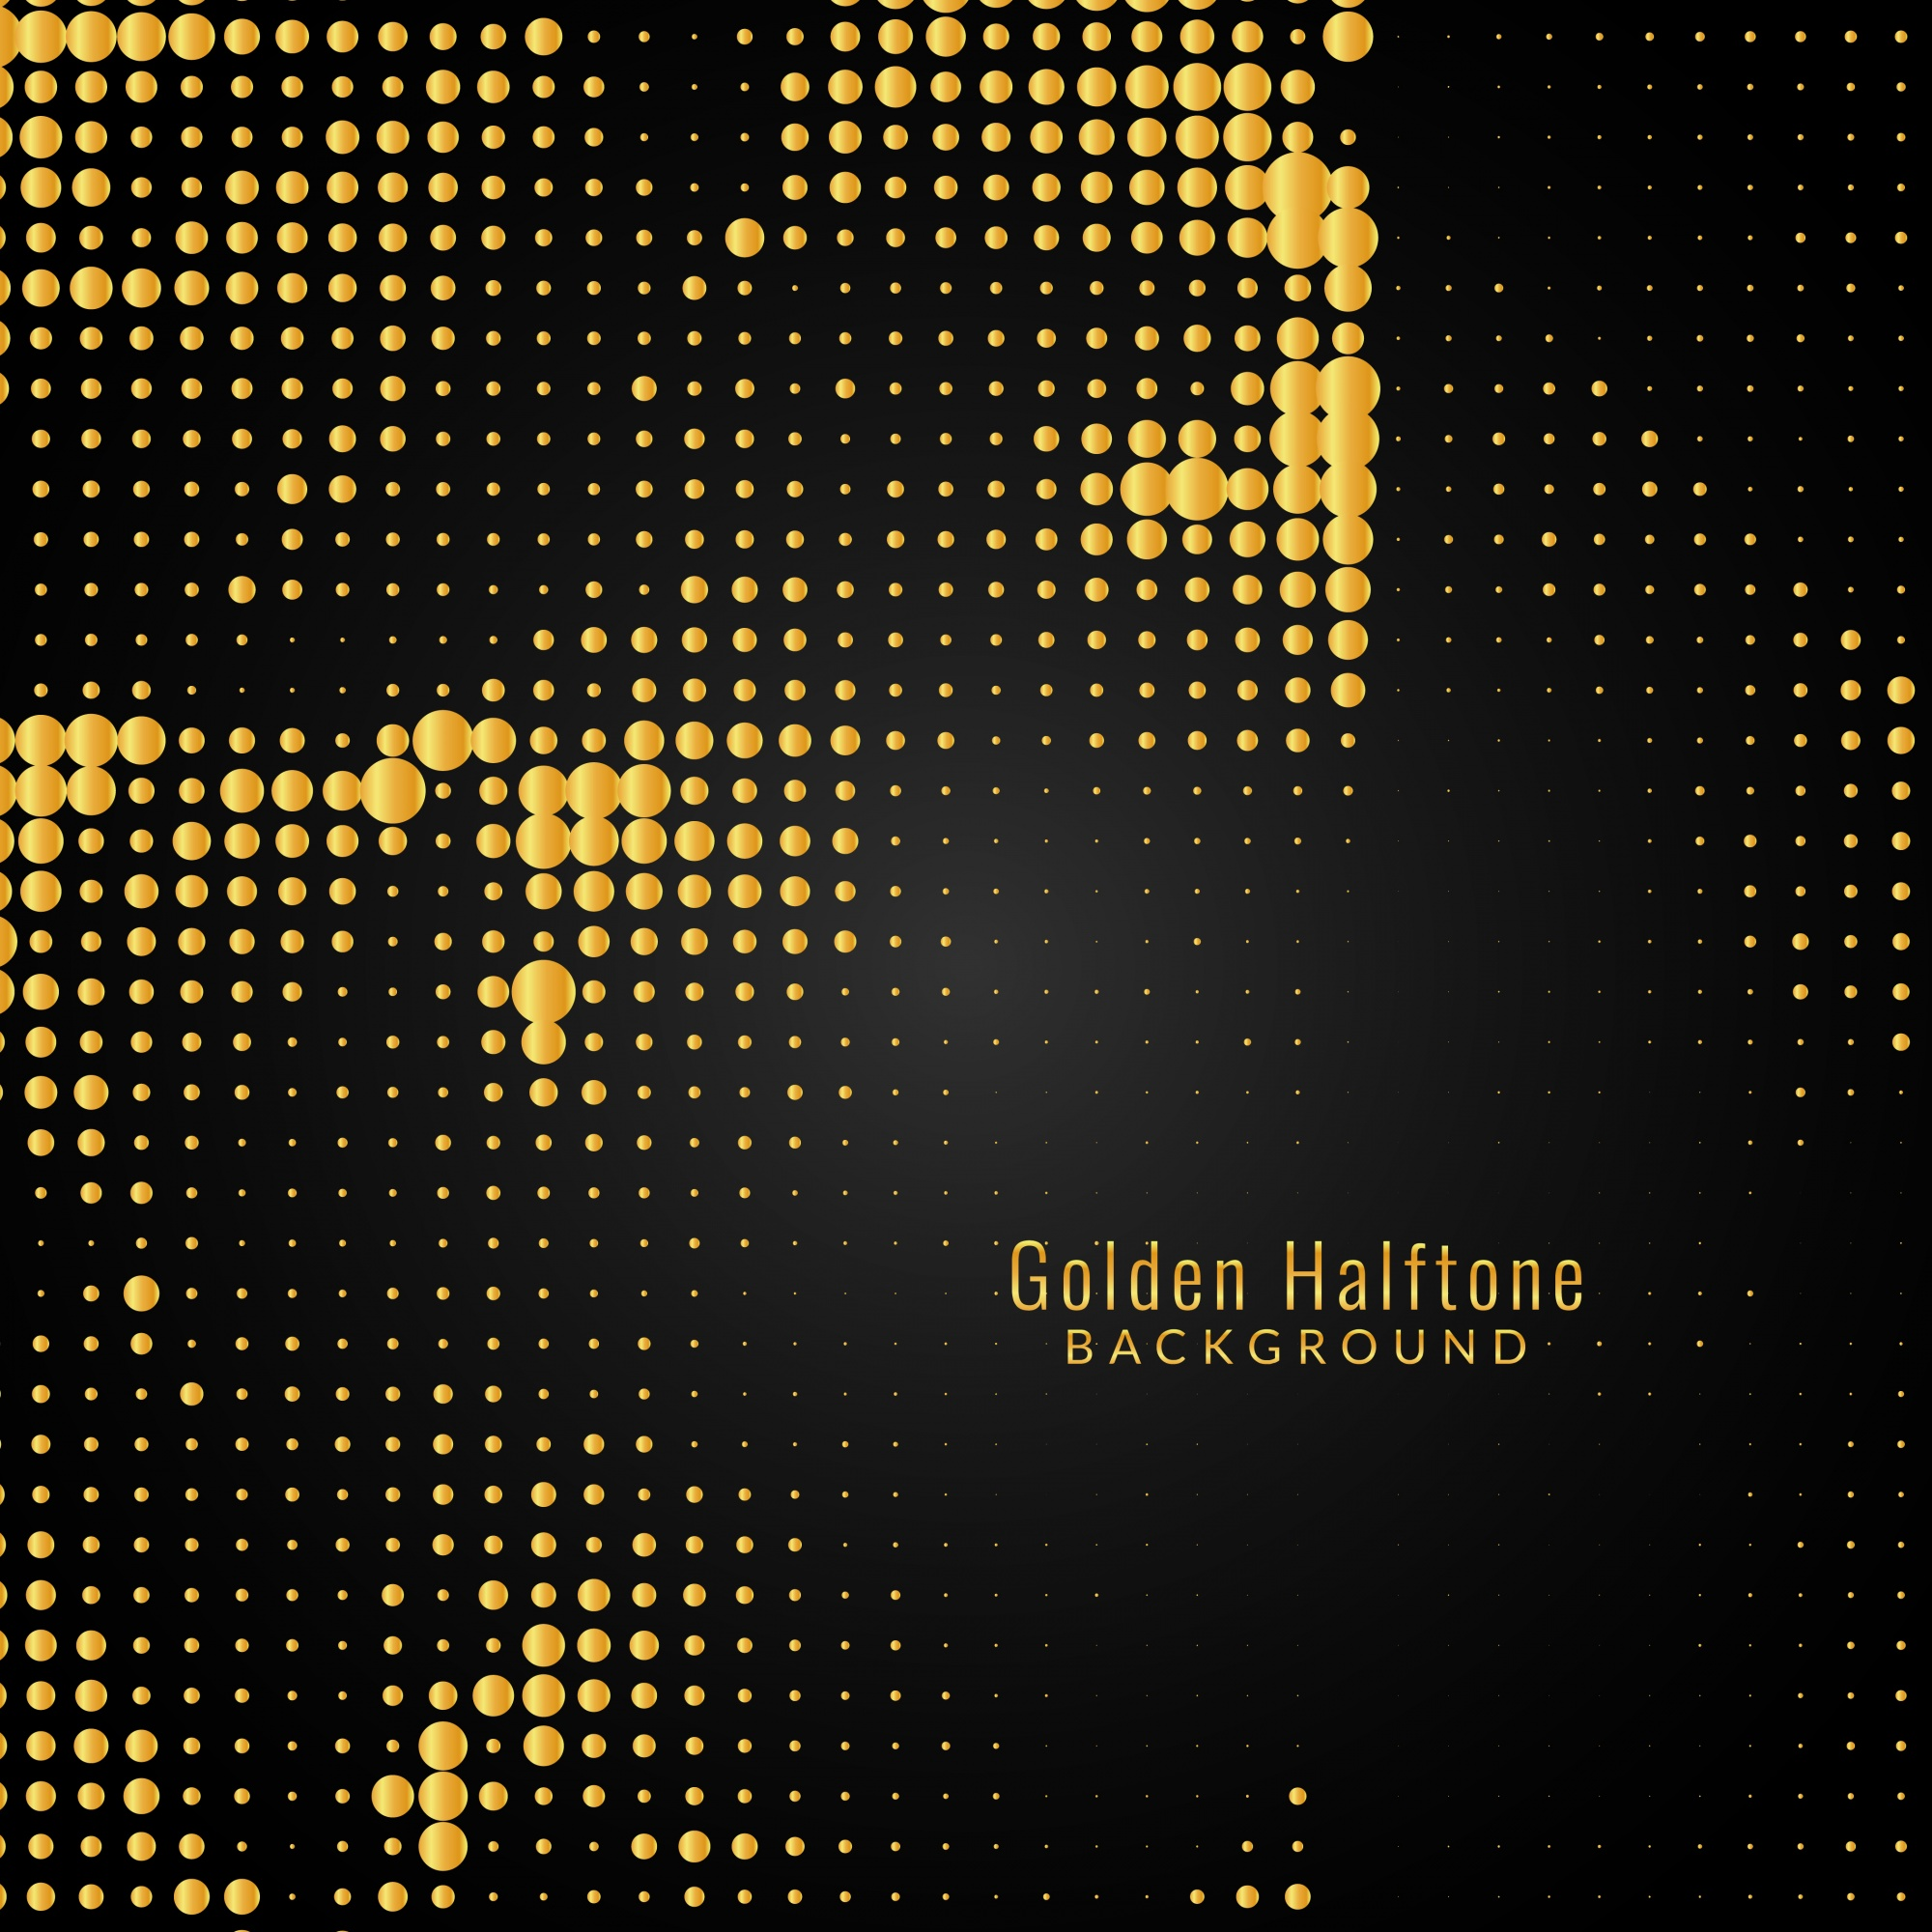 Abstract modern golden halftone background